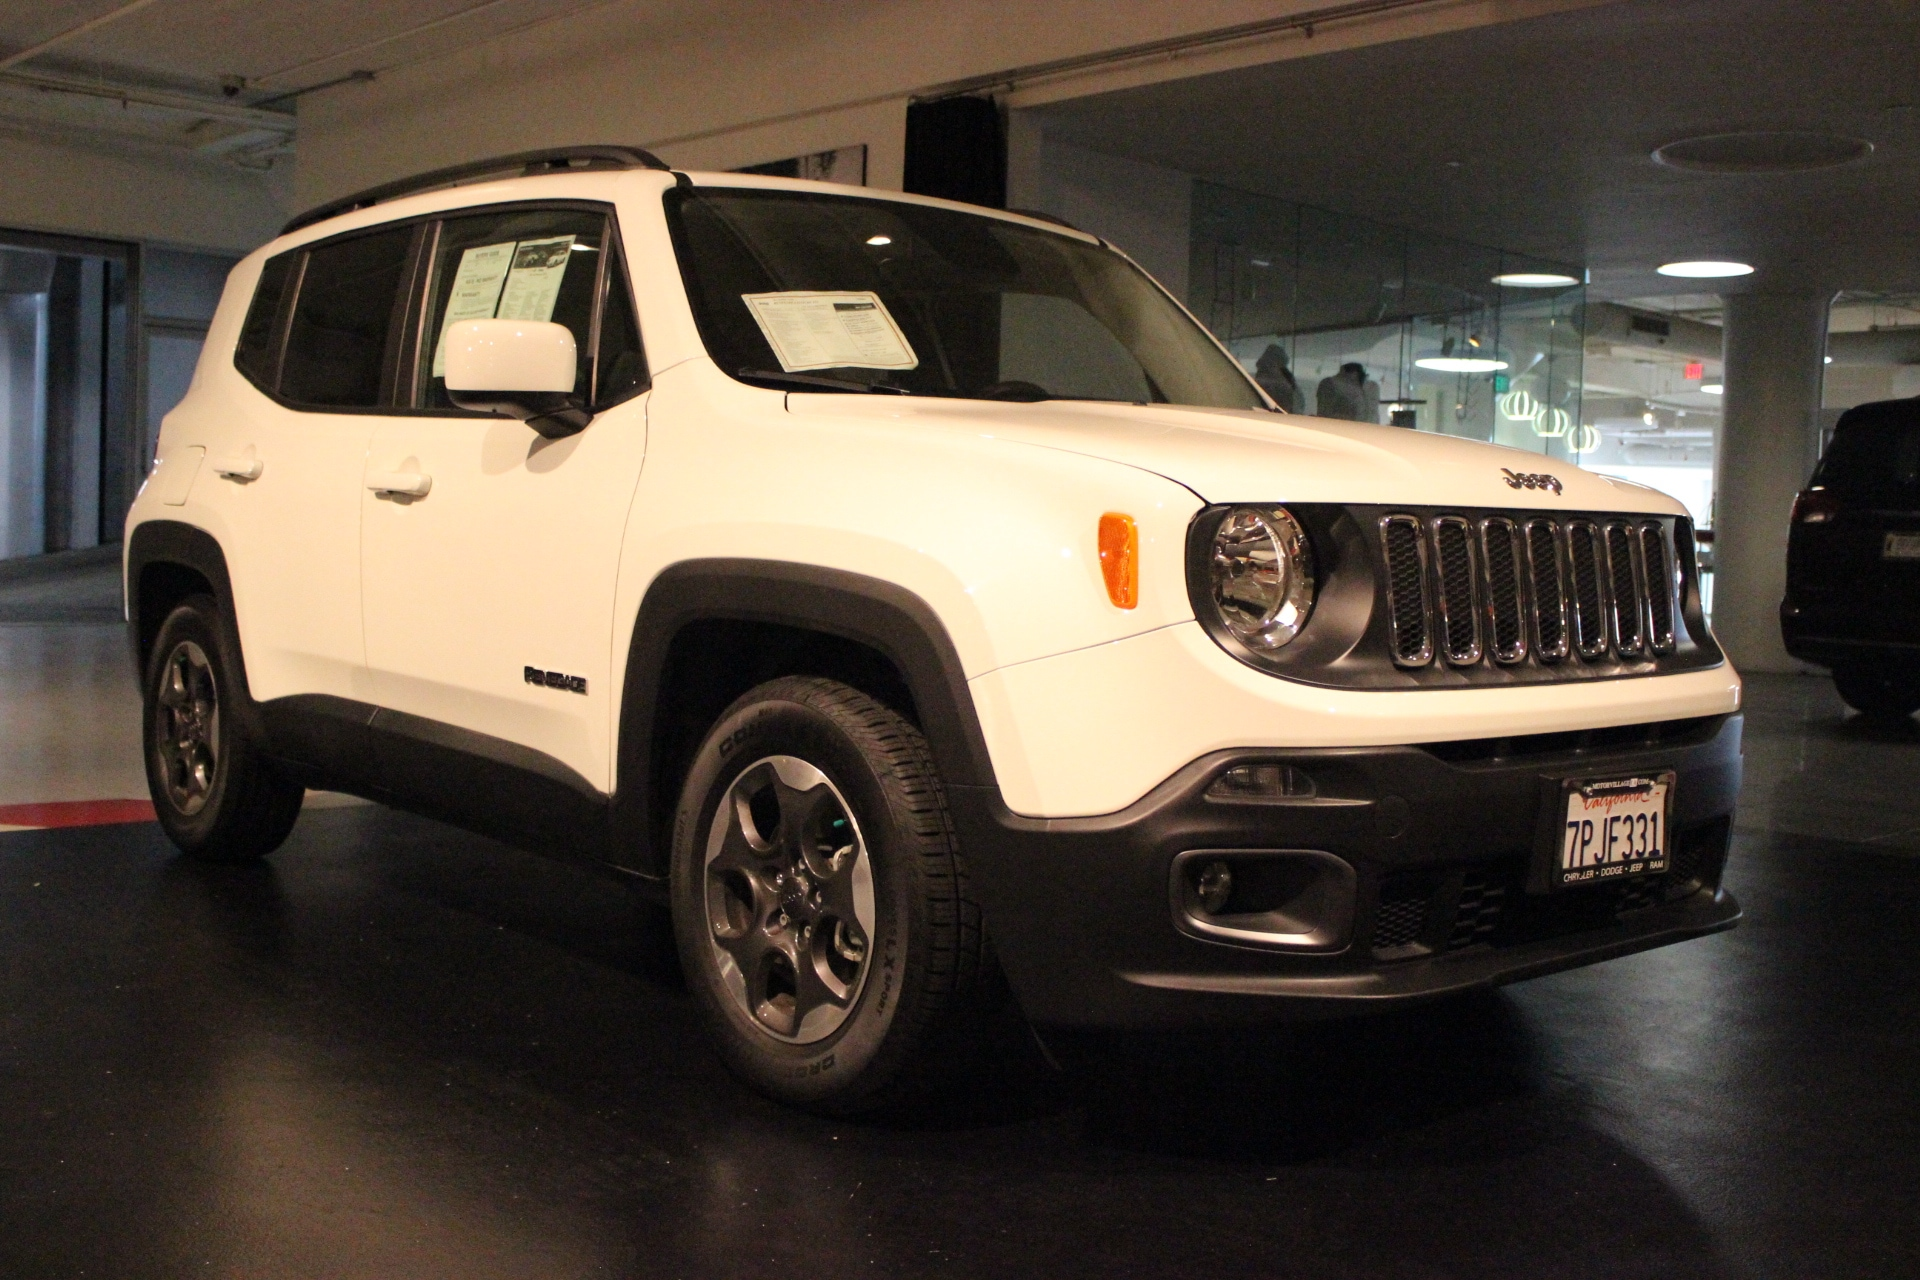 2015 Jeep Renegade Latitude Contact Motor Village LA today for information on dozens of vehicles